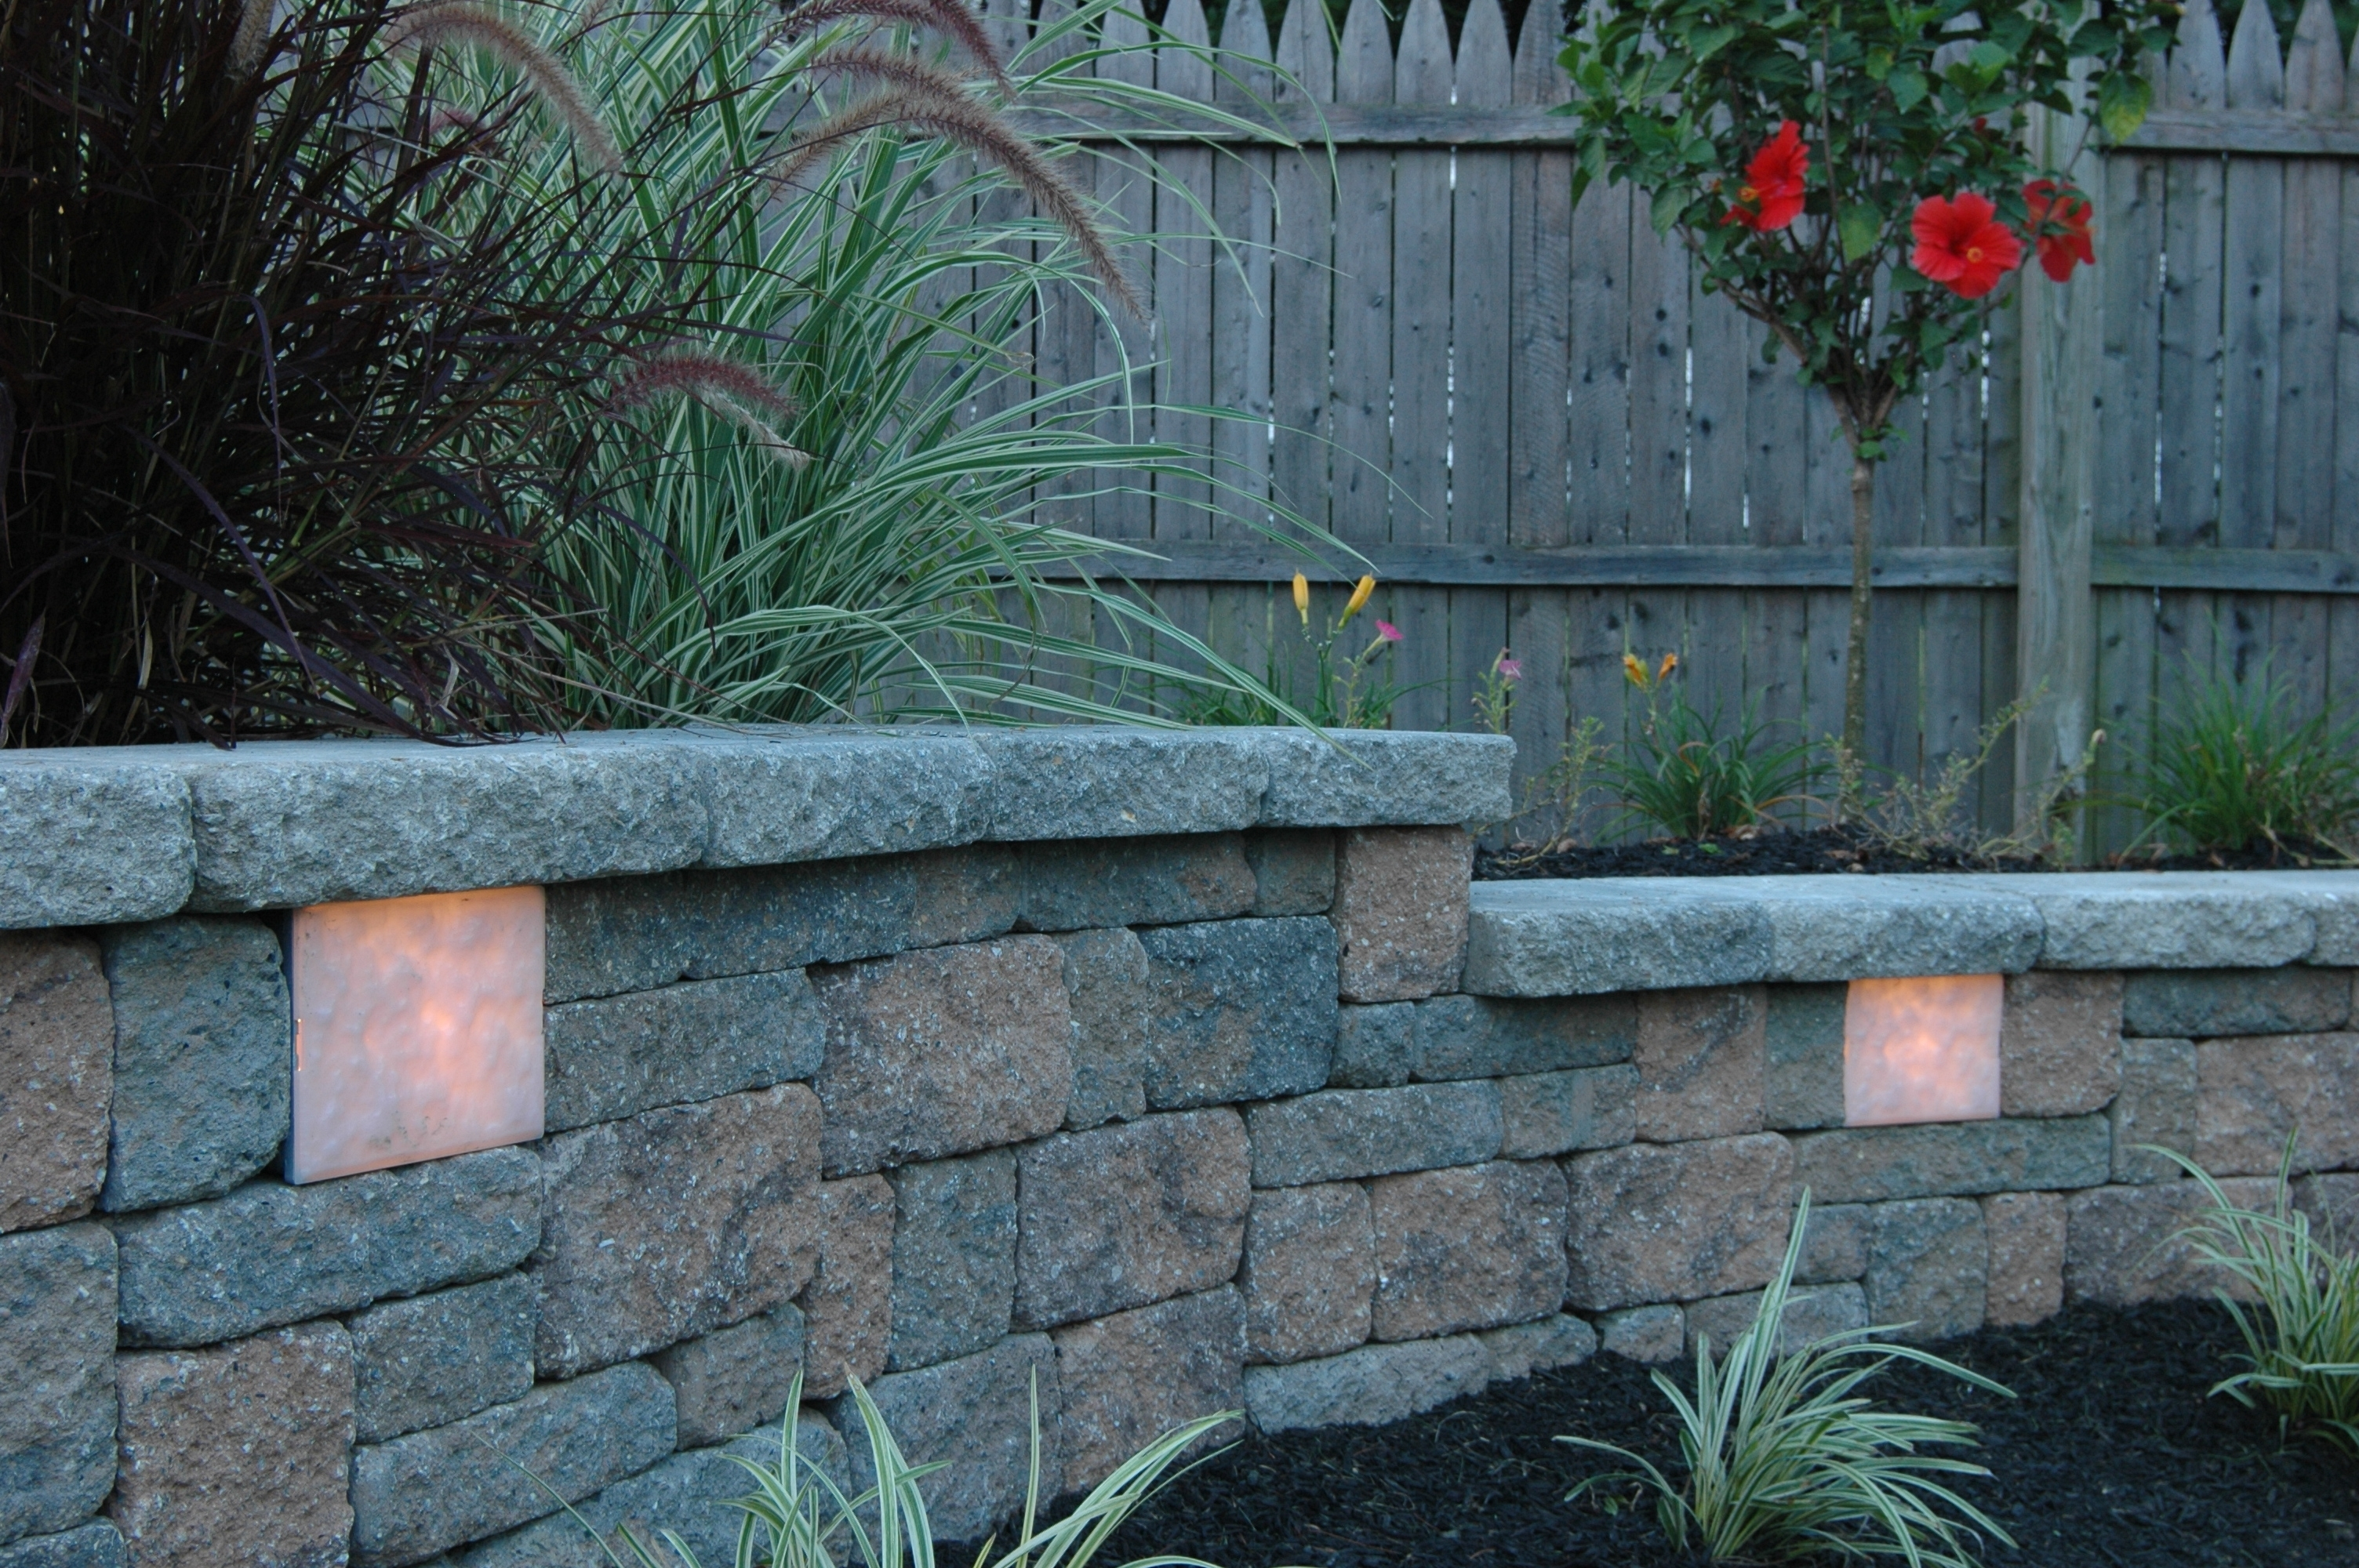 Garden Wall & Retaining Wall Lights – Old Station Landscape For Well Known Outdoor Retaining Wall Lighting (Gallery 1 of 20)